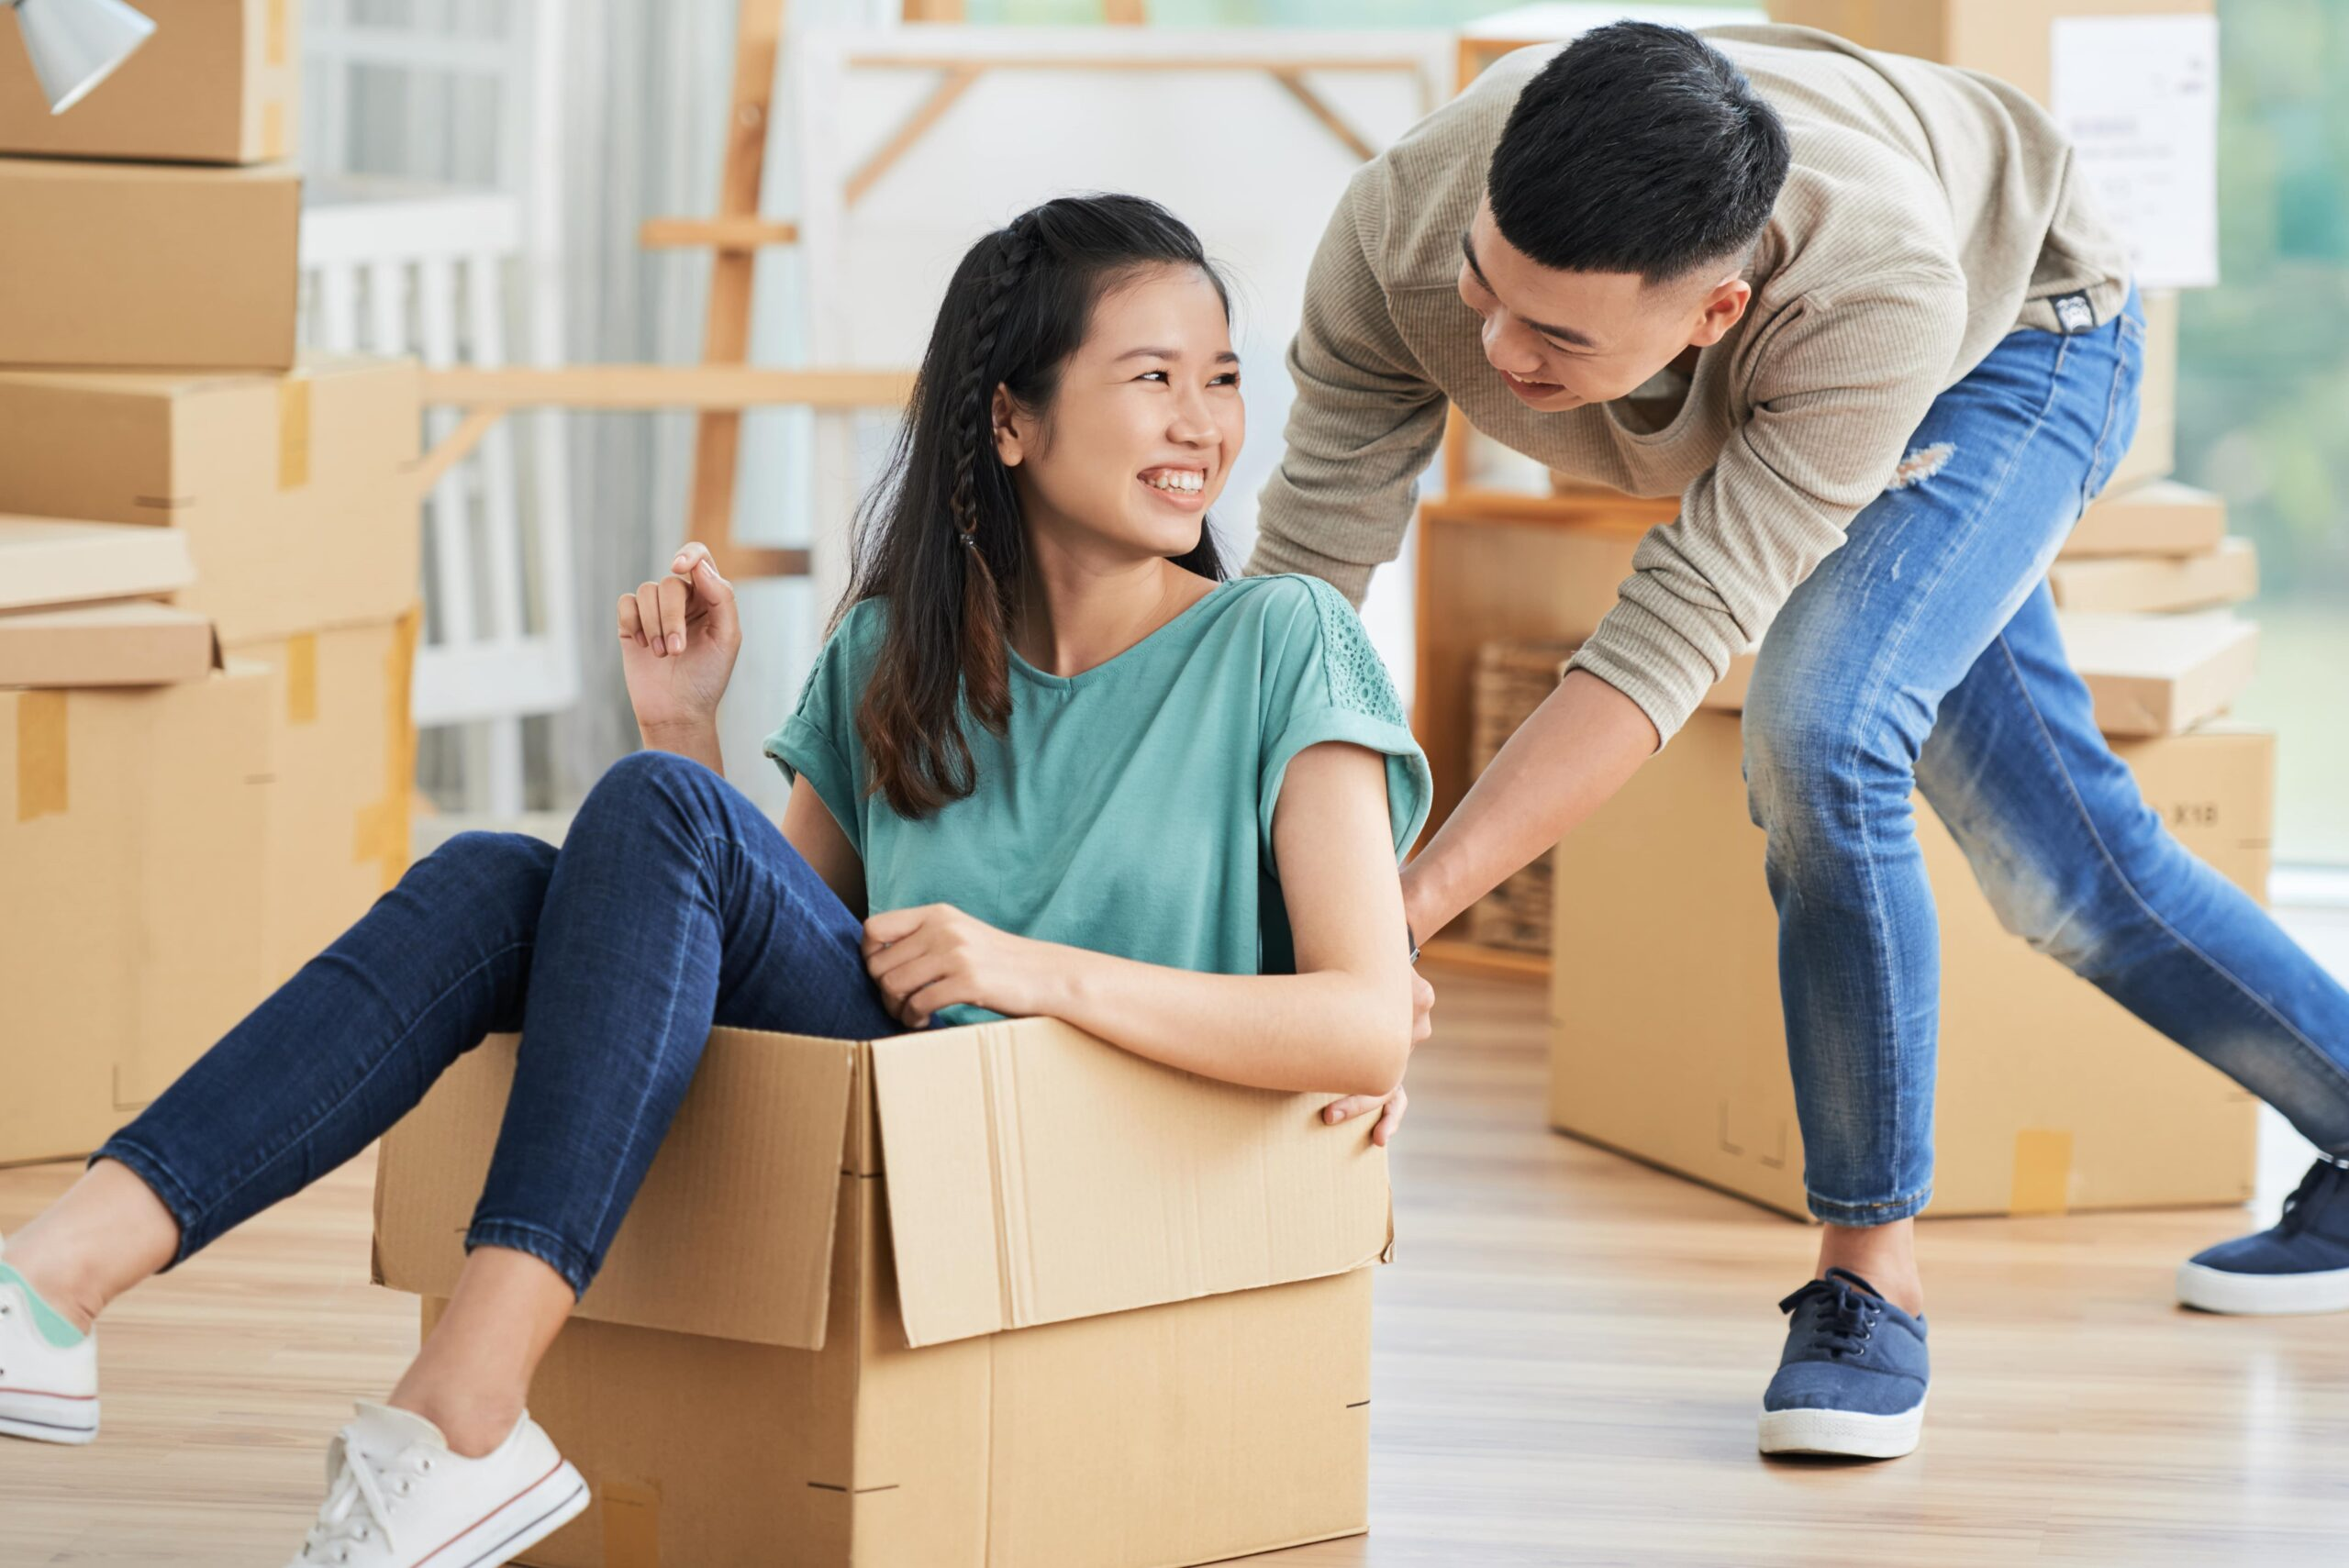 You're Ready to Move In Together